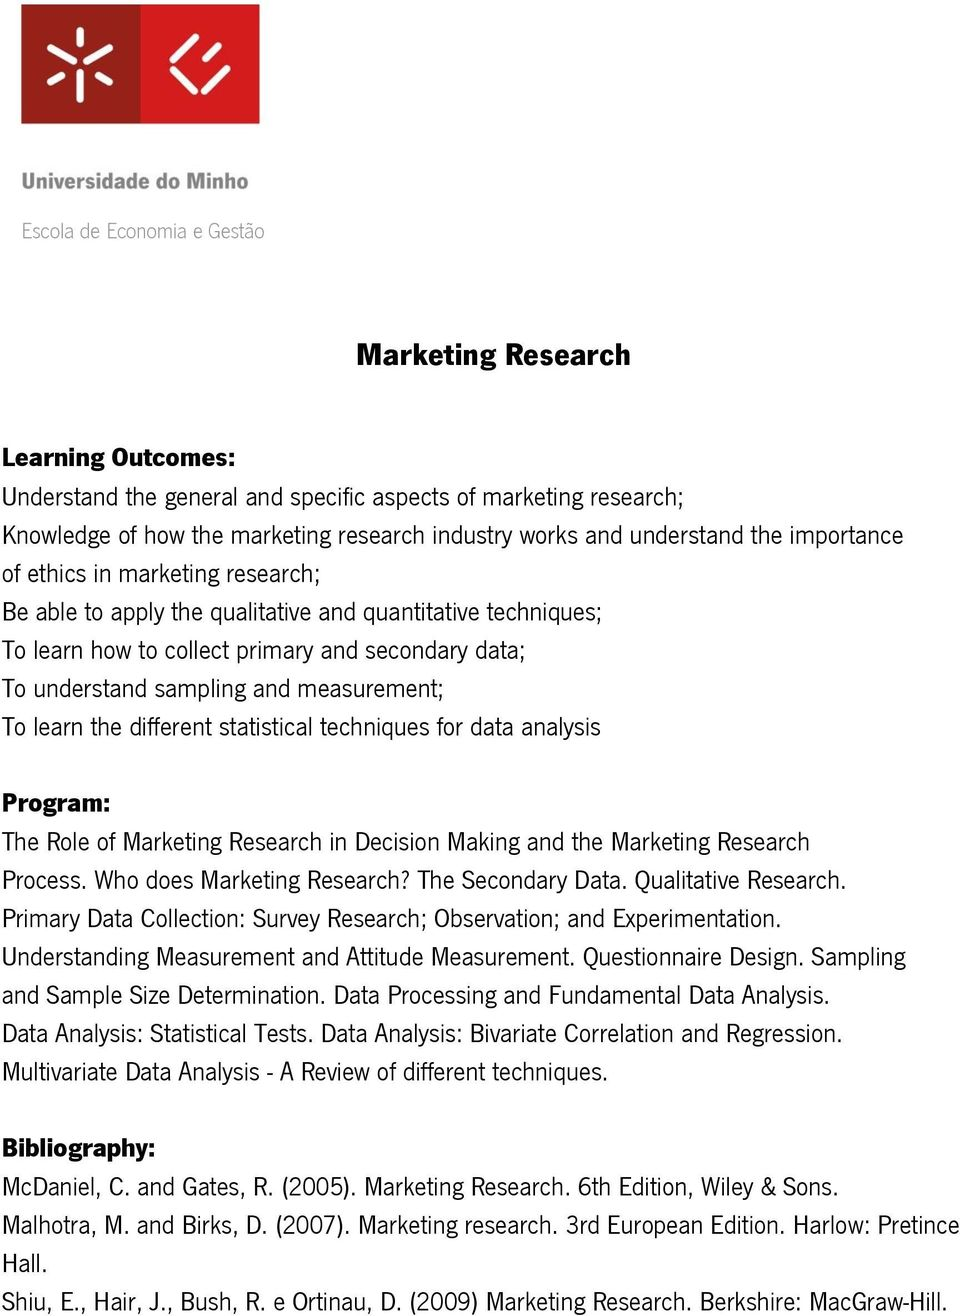 techniques for data analysis The Role of Marketing Research in Decision Making and the Marketing Research Process. Who does Marketing Research? The Secondary Data. Qualitative Research.